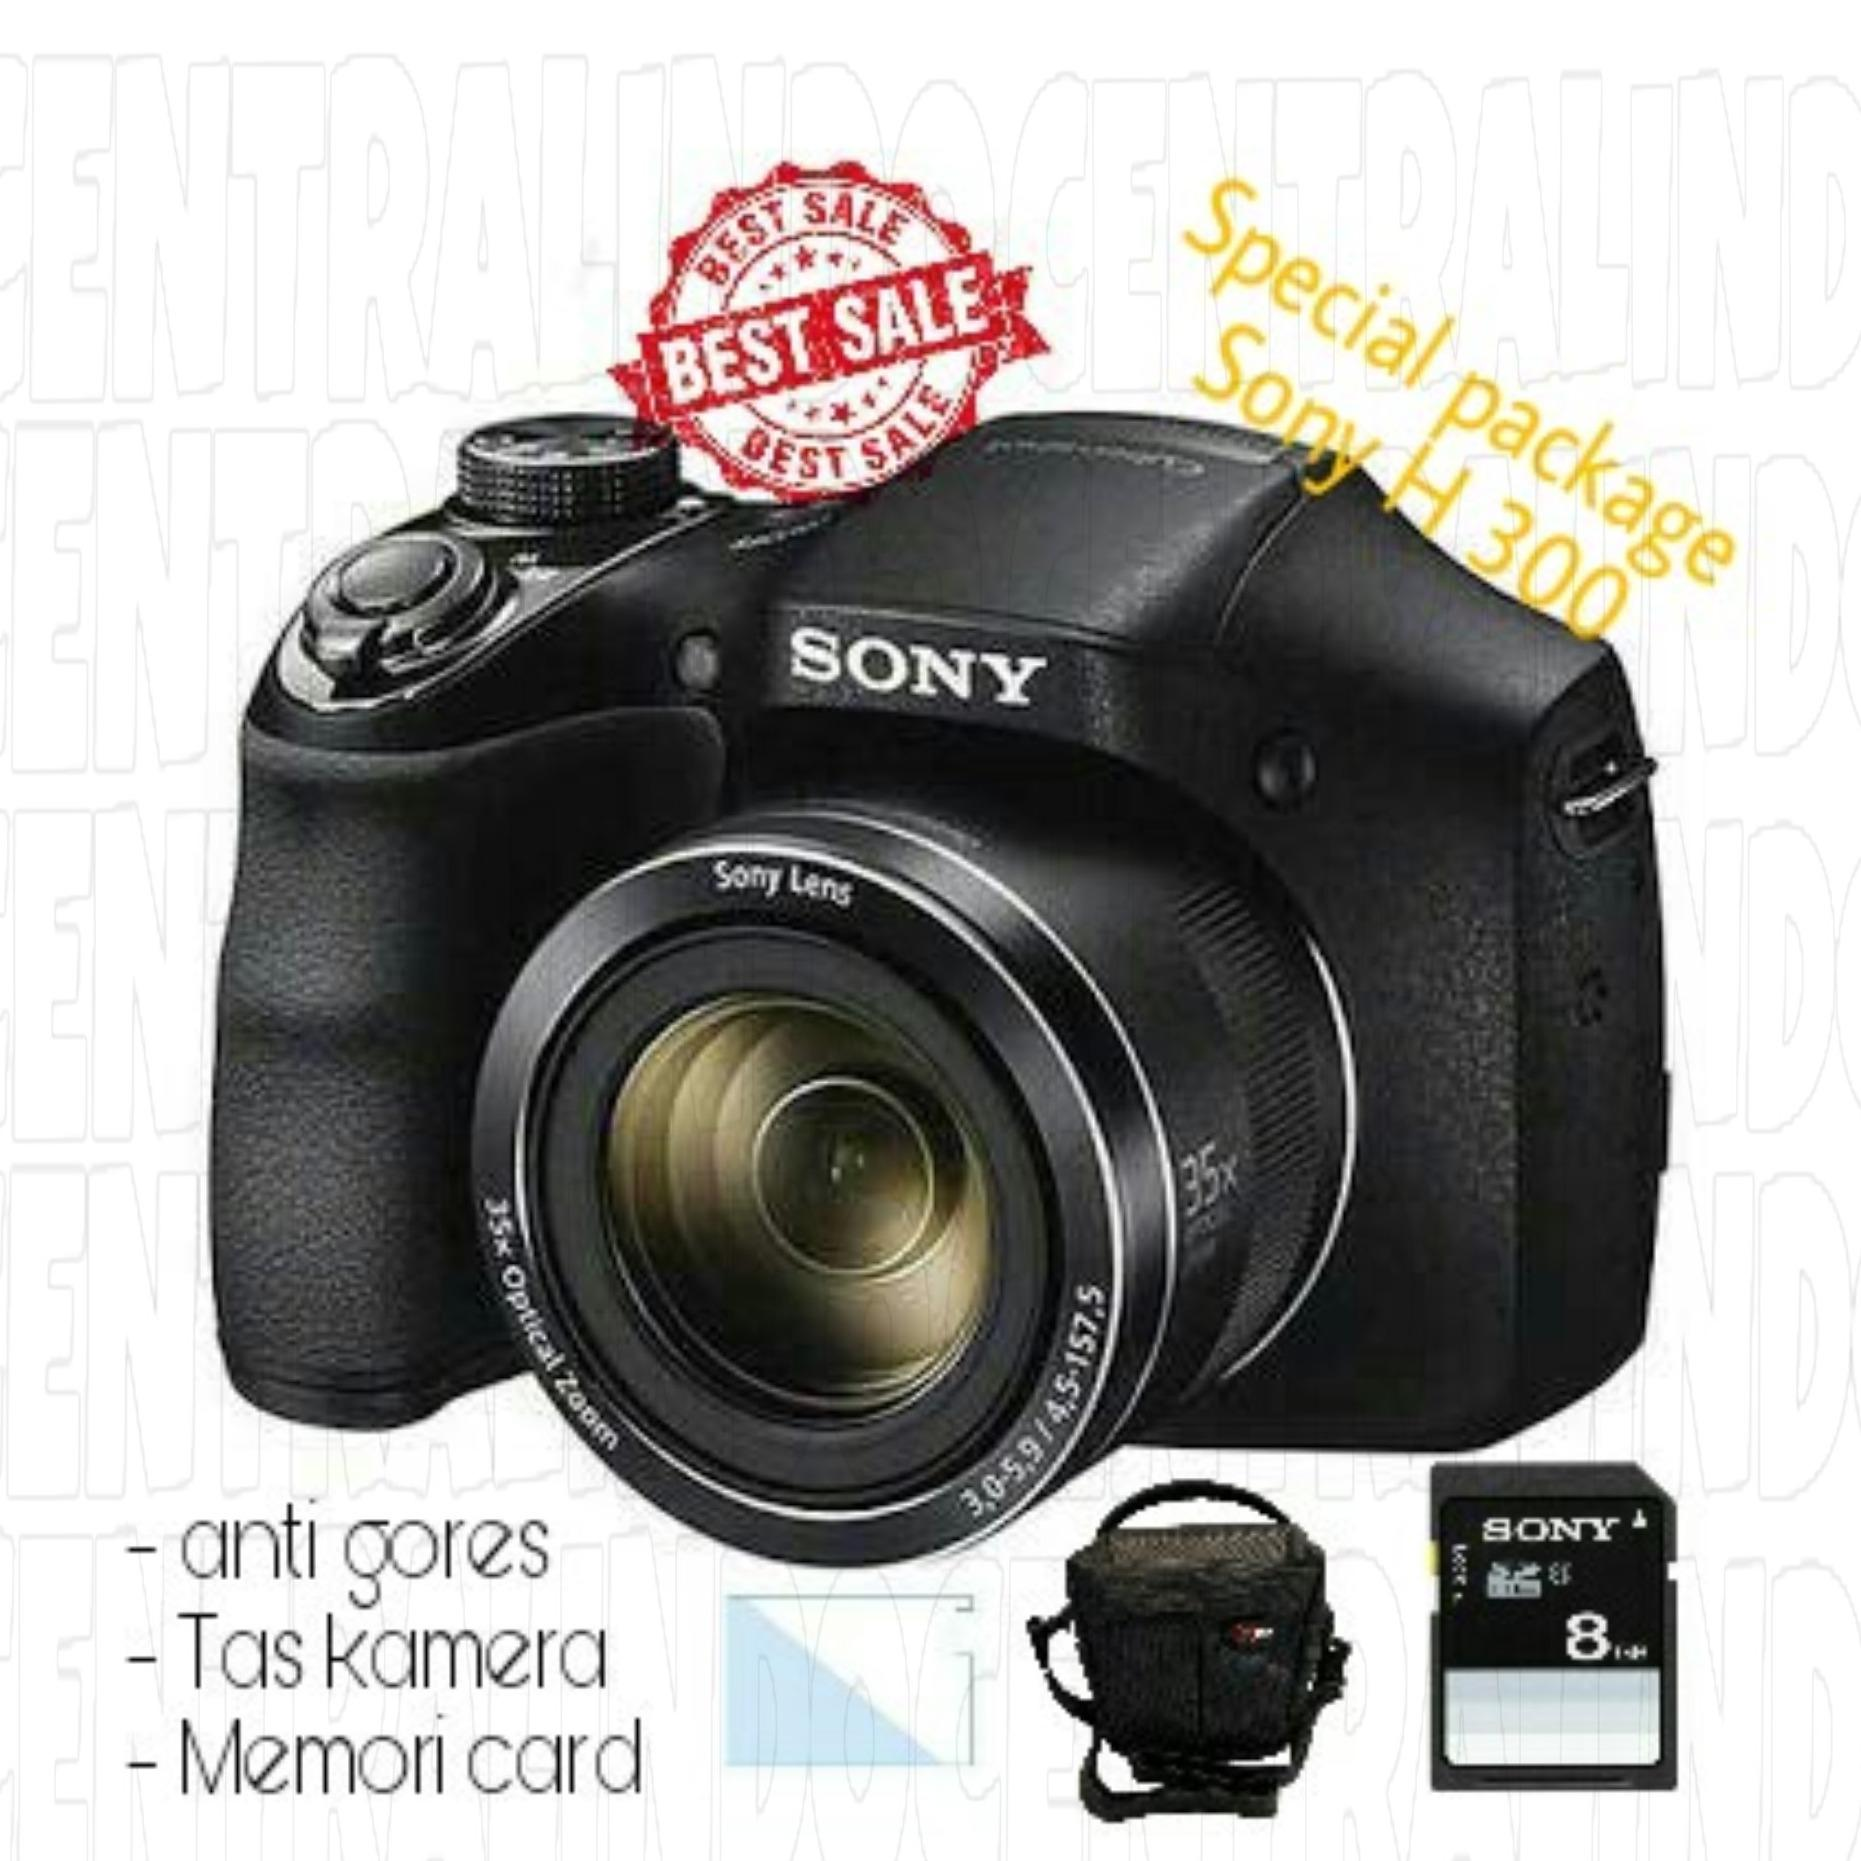 Harga Special Package Kamera Sony H300 With Acc Online